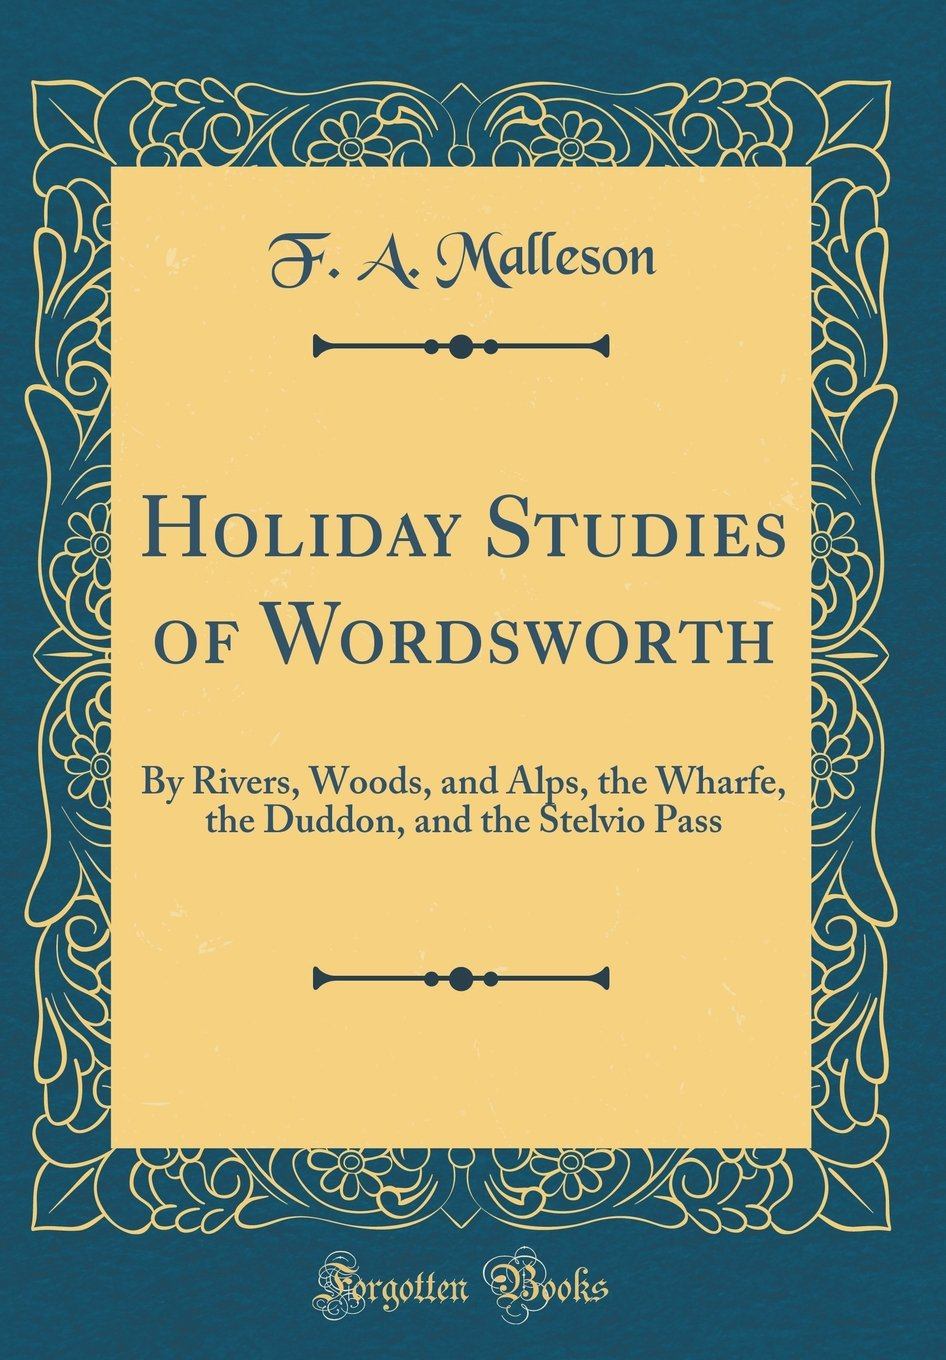 Download Holiday Studies of Wordsworth: By Rivers, Woods, and Alps, the Wharfe, the Duddon, and the Stelvio Pass (Classic Reprint) PDF